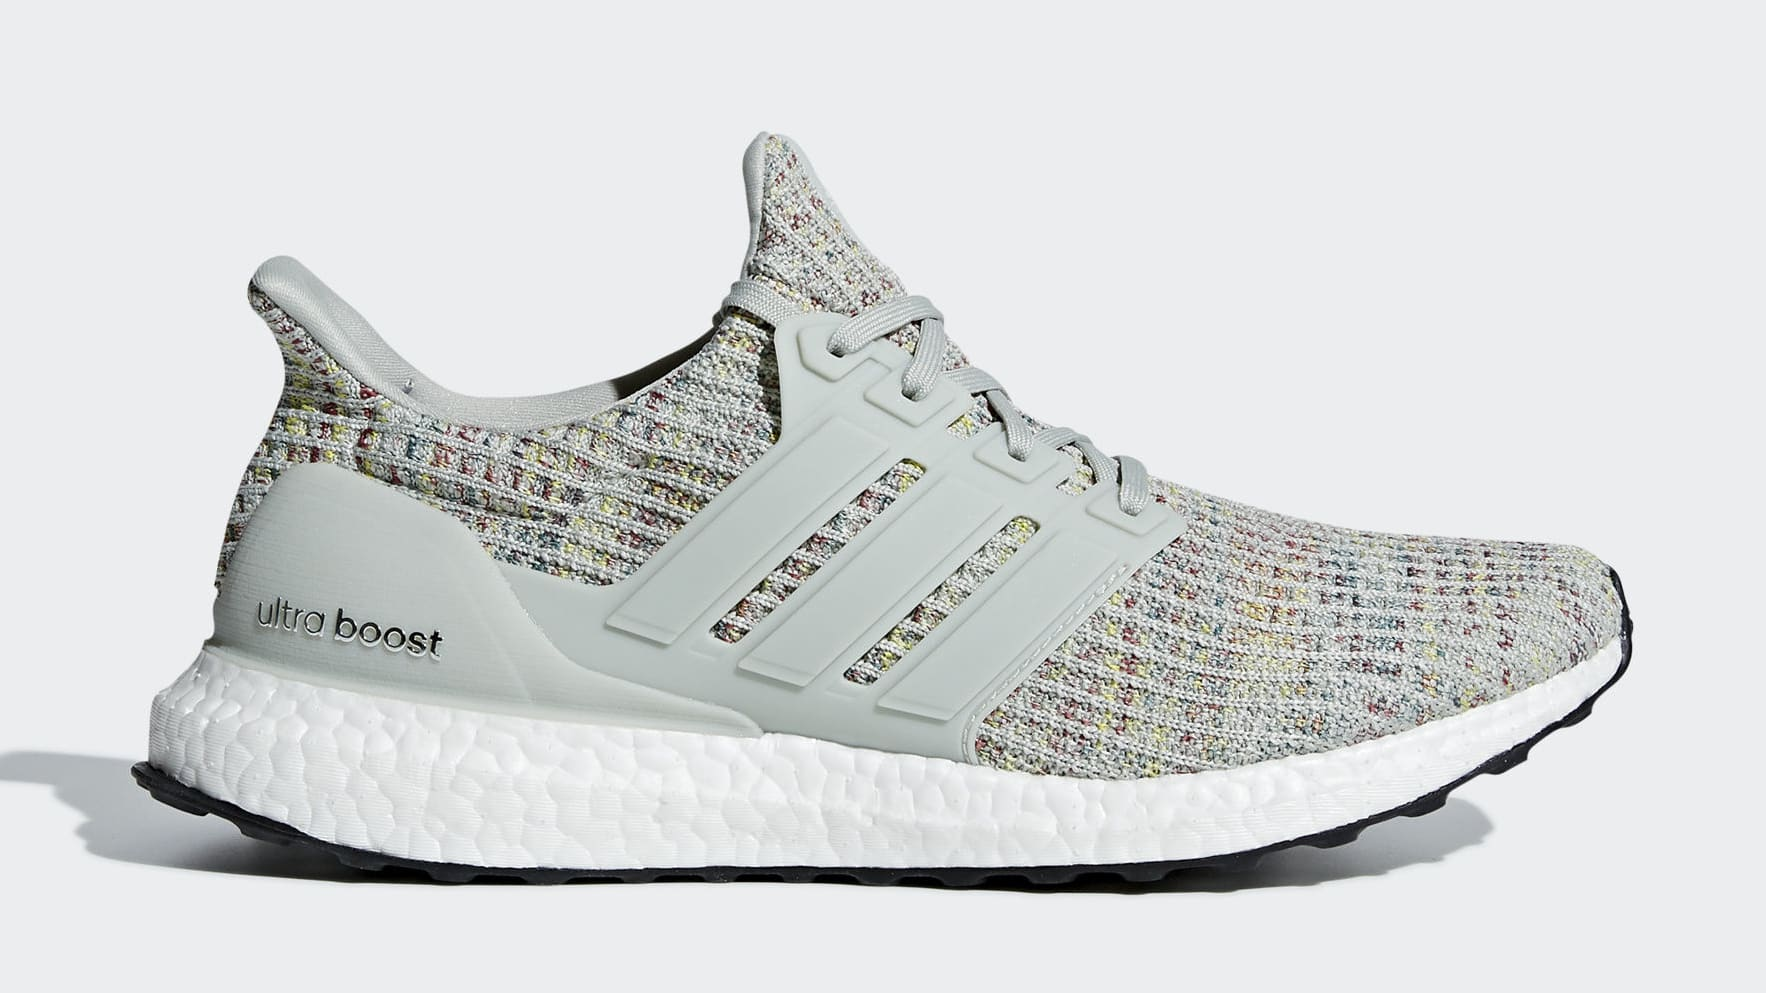 Mi Adidas Ultra Boost 4.0 Multicolor Review!